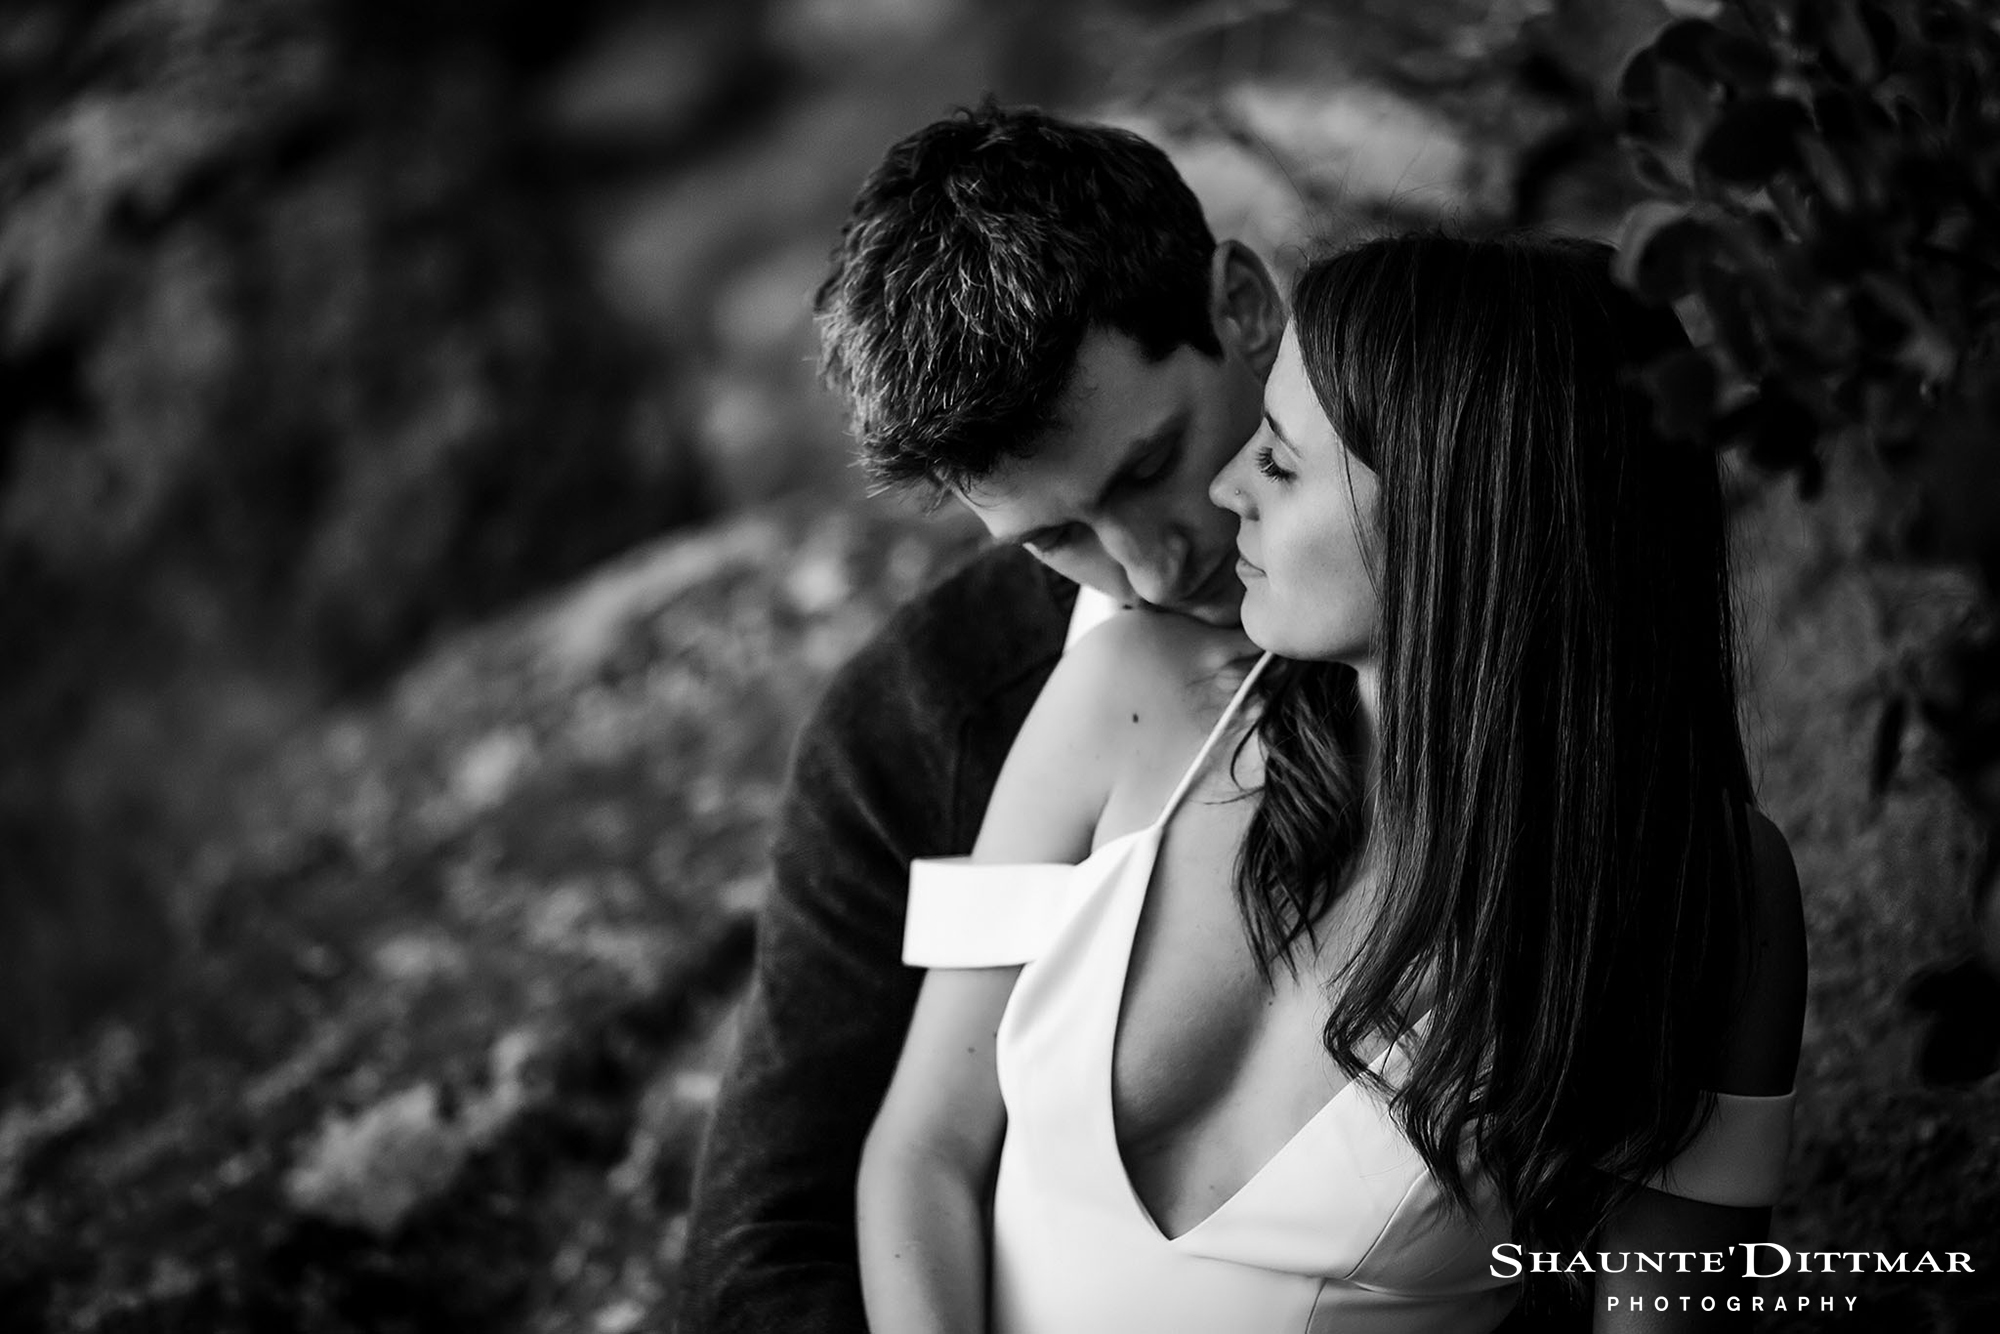 Kim_Daniel_352_Bonzai_Rock_Engagement_Lake_Tahoe_Shaunte_Dittmar_Photography.jpg